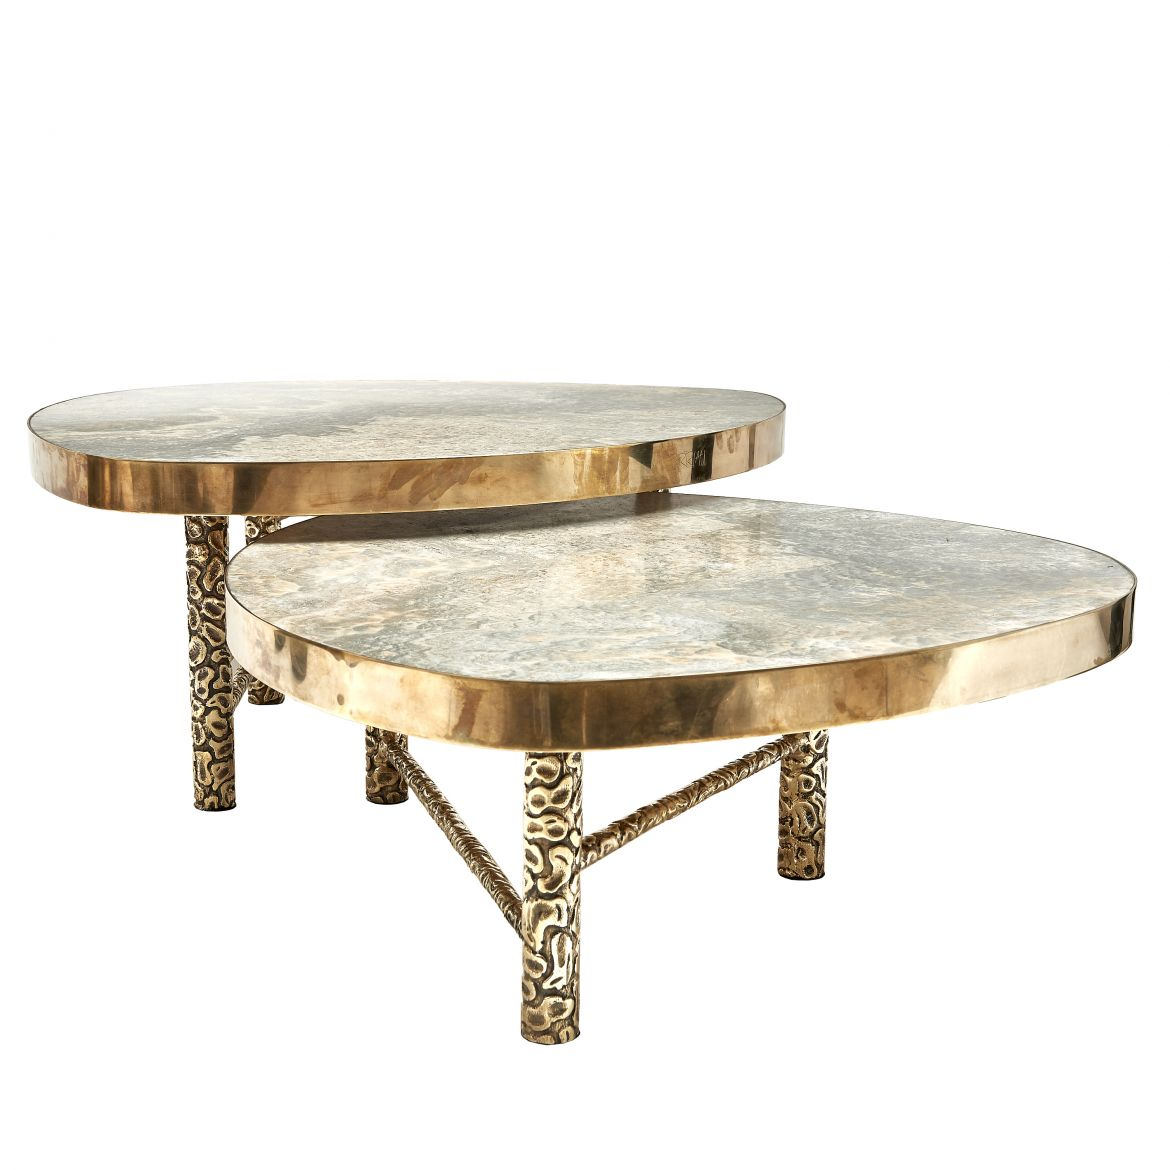 Arriau Onyx Coffee Table